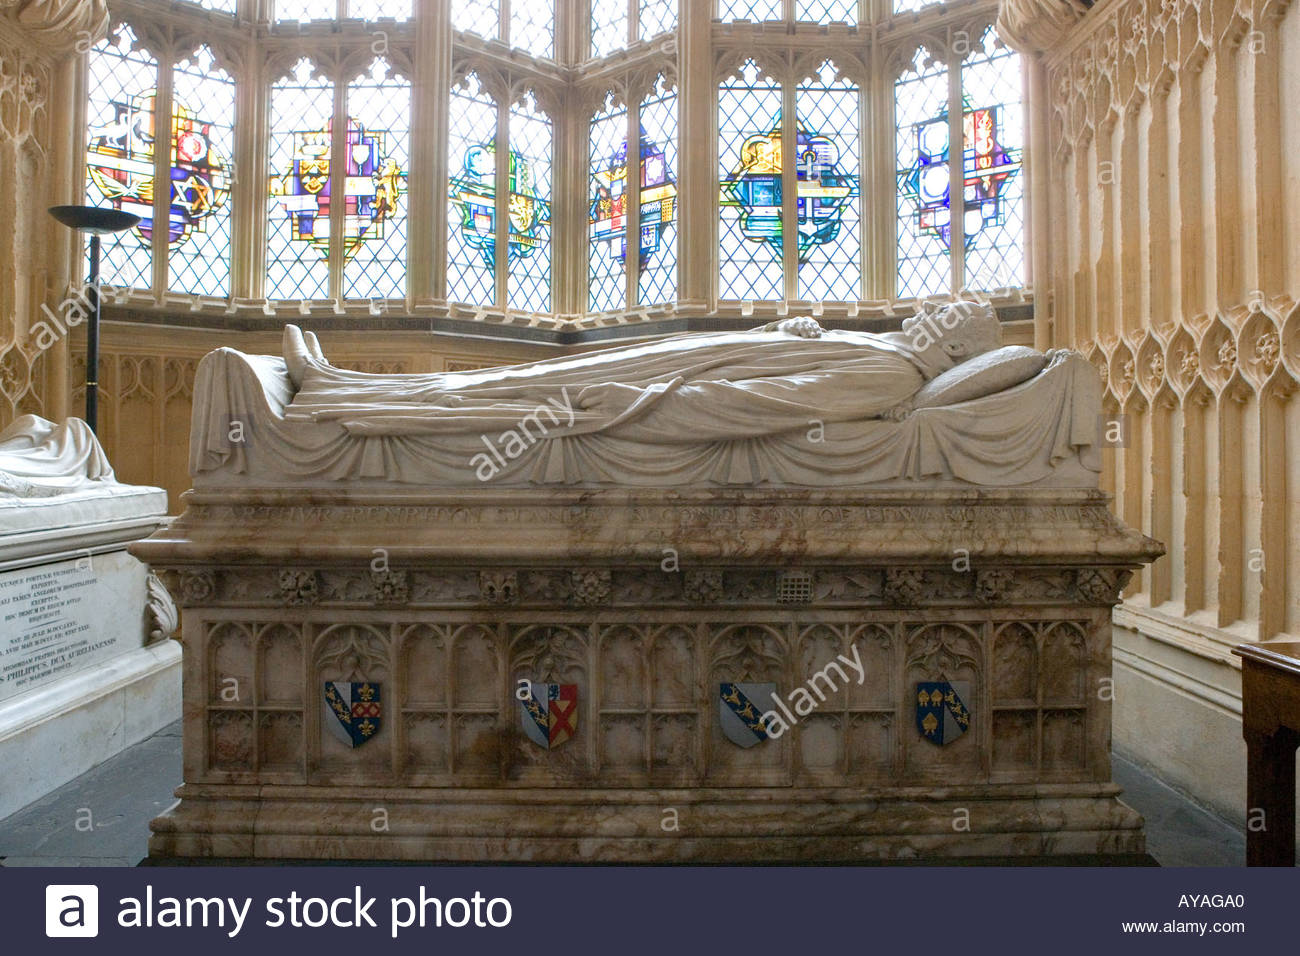 tomb-of-arthur-stanley-one-of-the-deans-of-westminster-abbey-london-AYAGA0